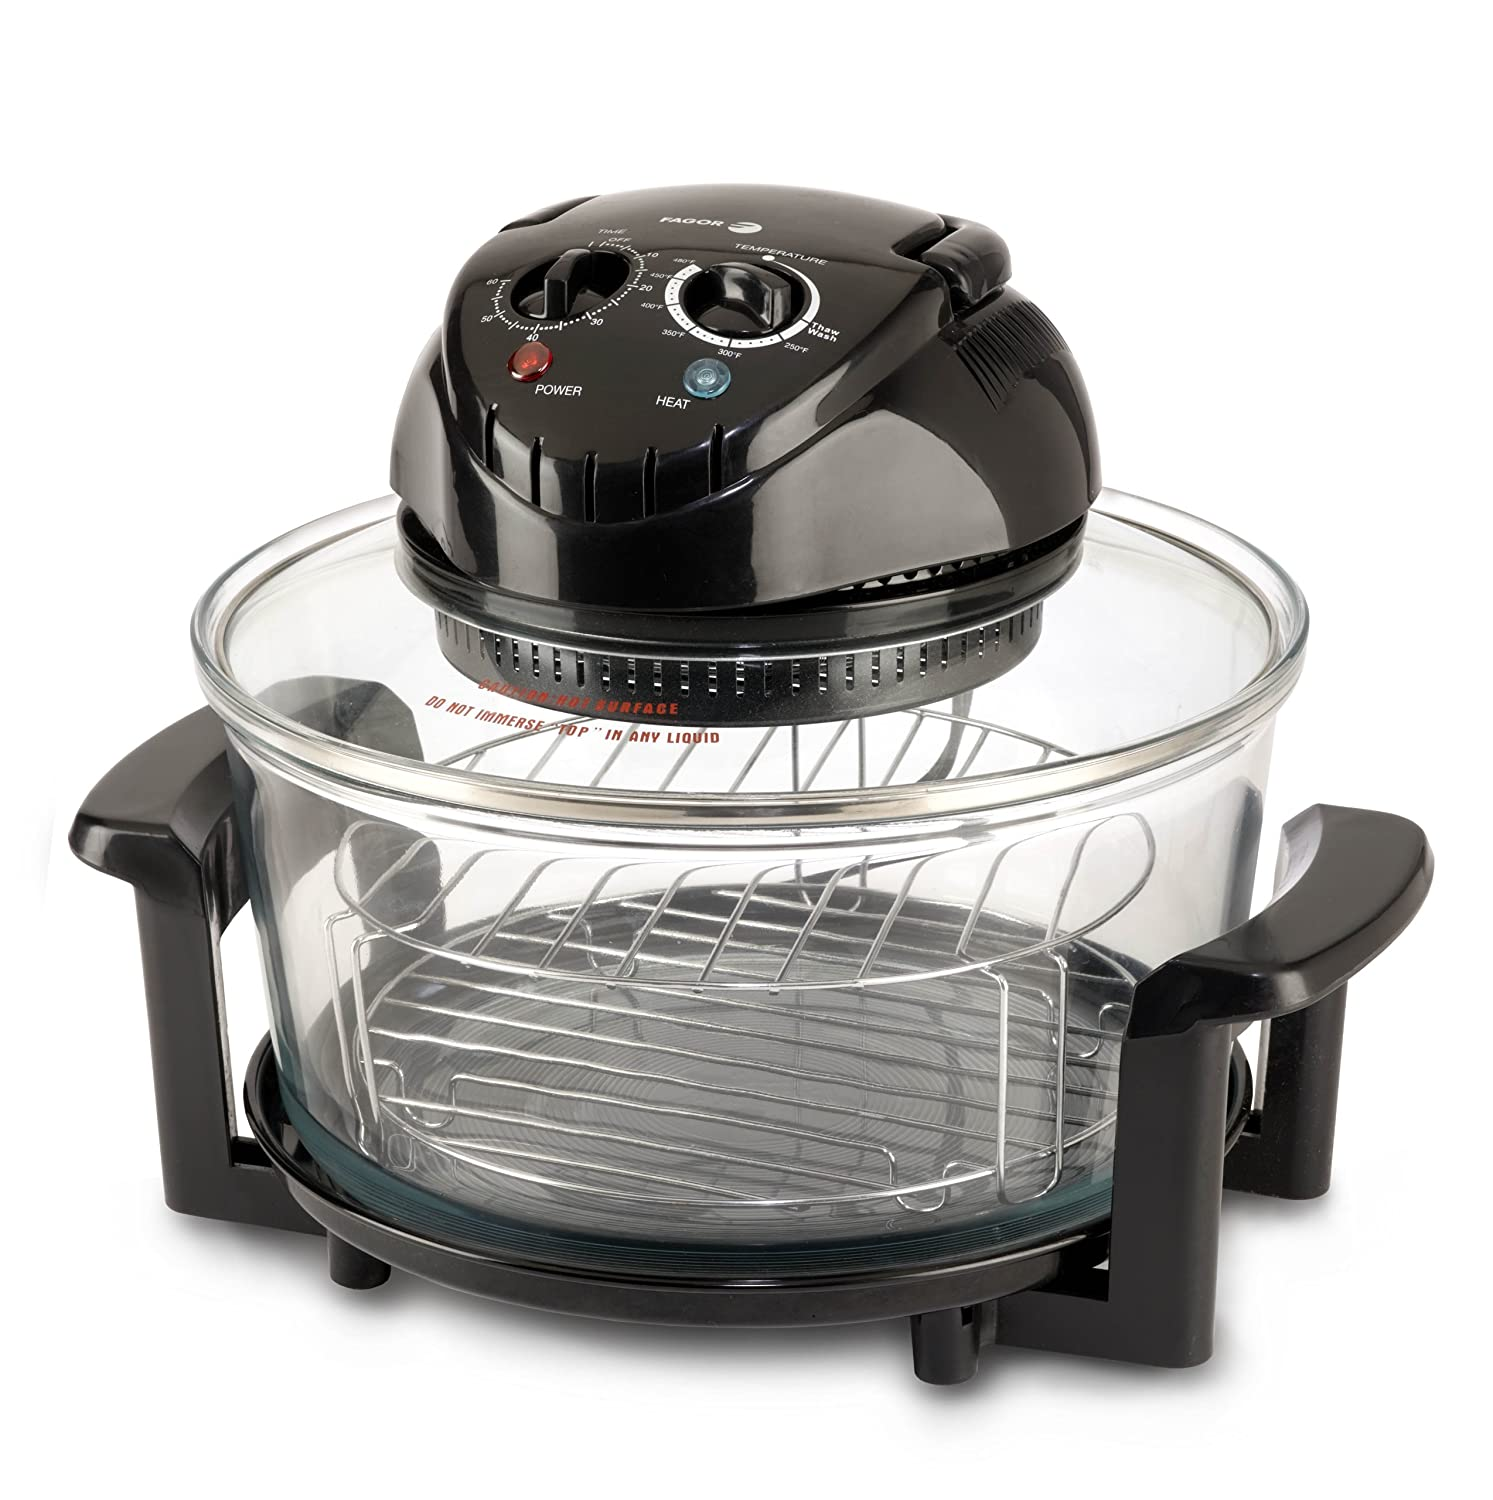 Countertop Halogen Convection Oven : Which Is The Best Halogen Oven? Halogen Oven Cooking